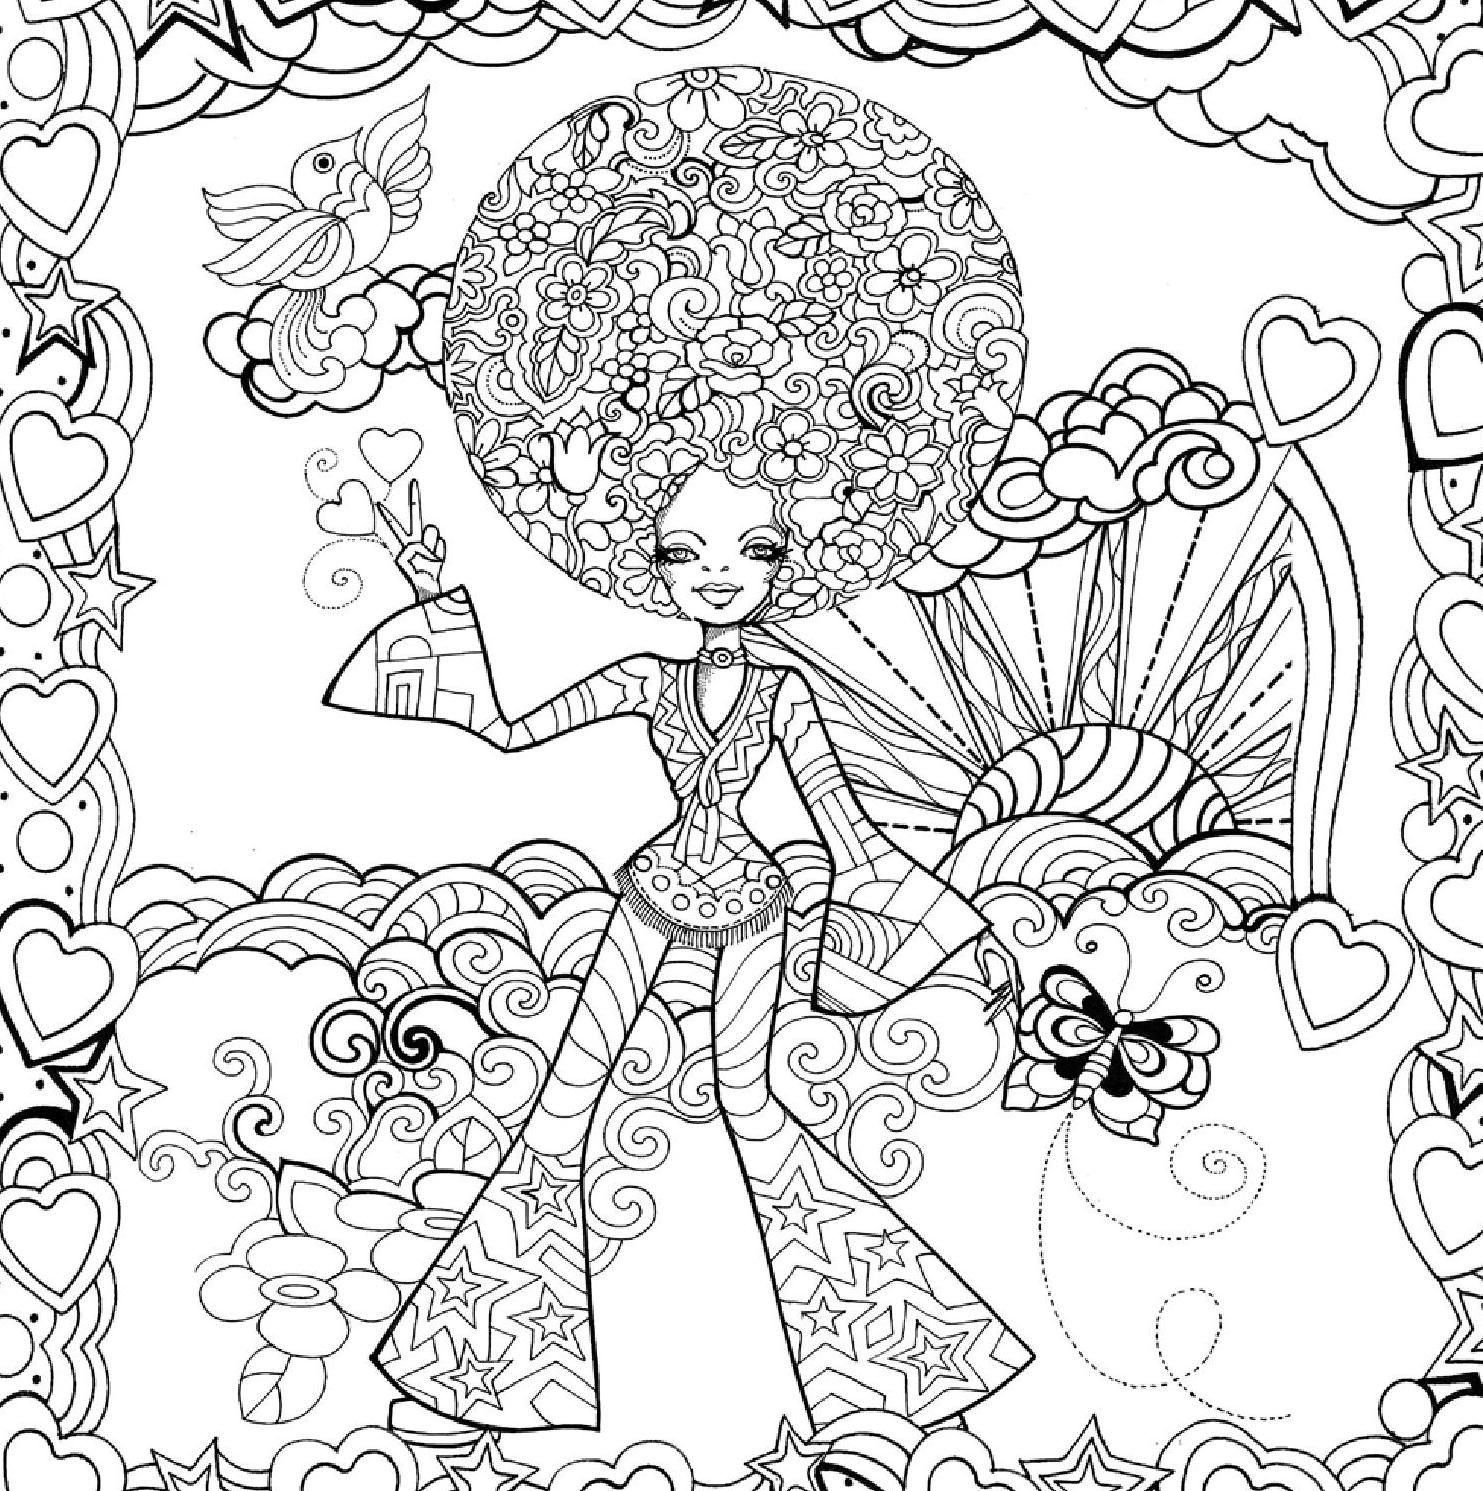 Moda Uma Historia Para Colorir With Images Coloring Pages